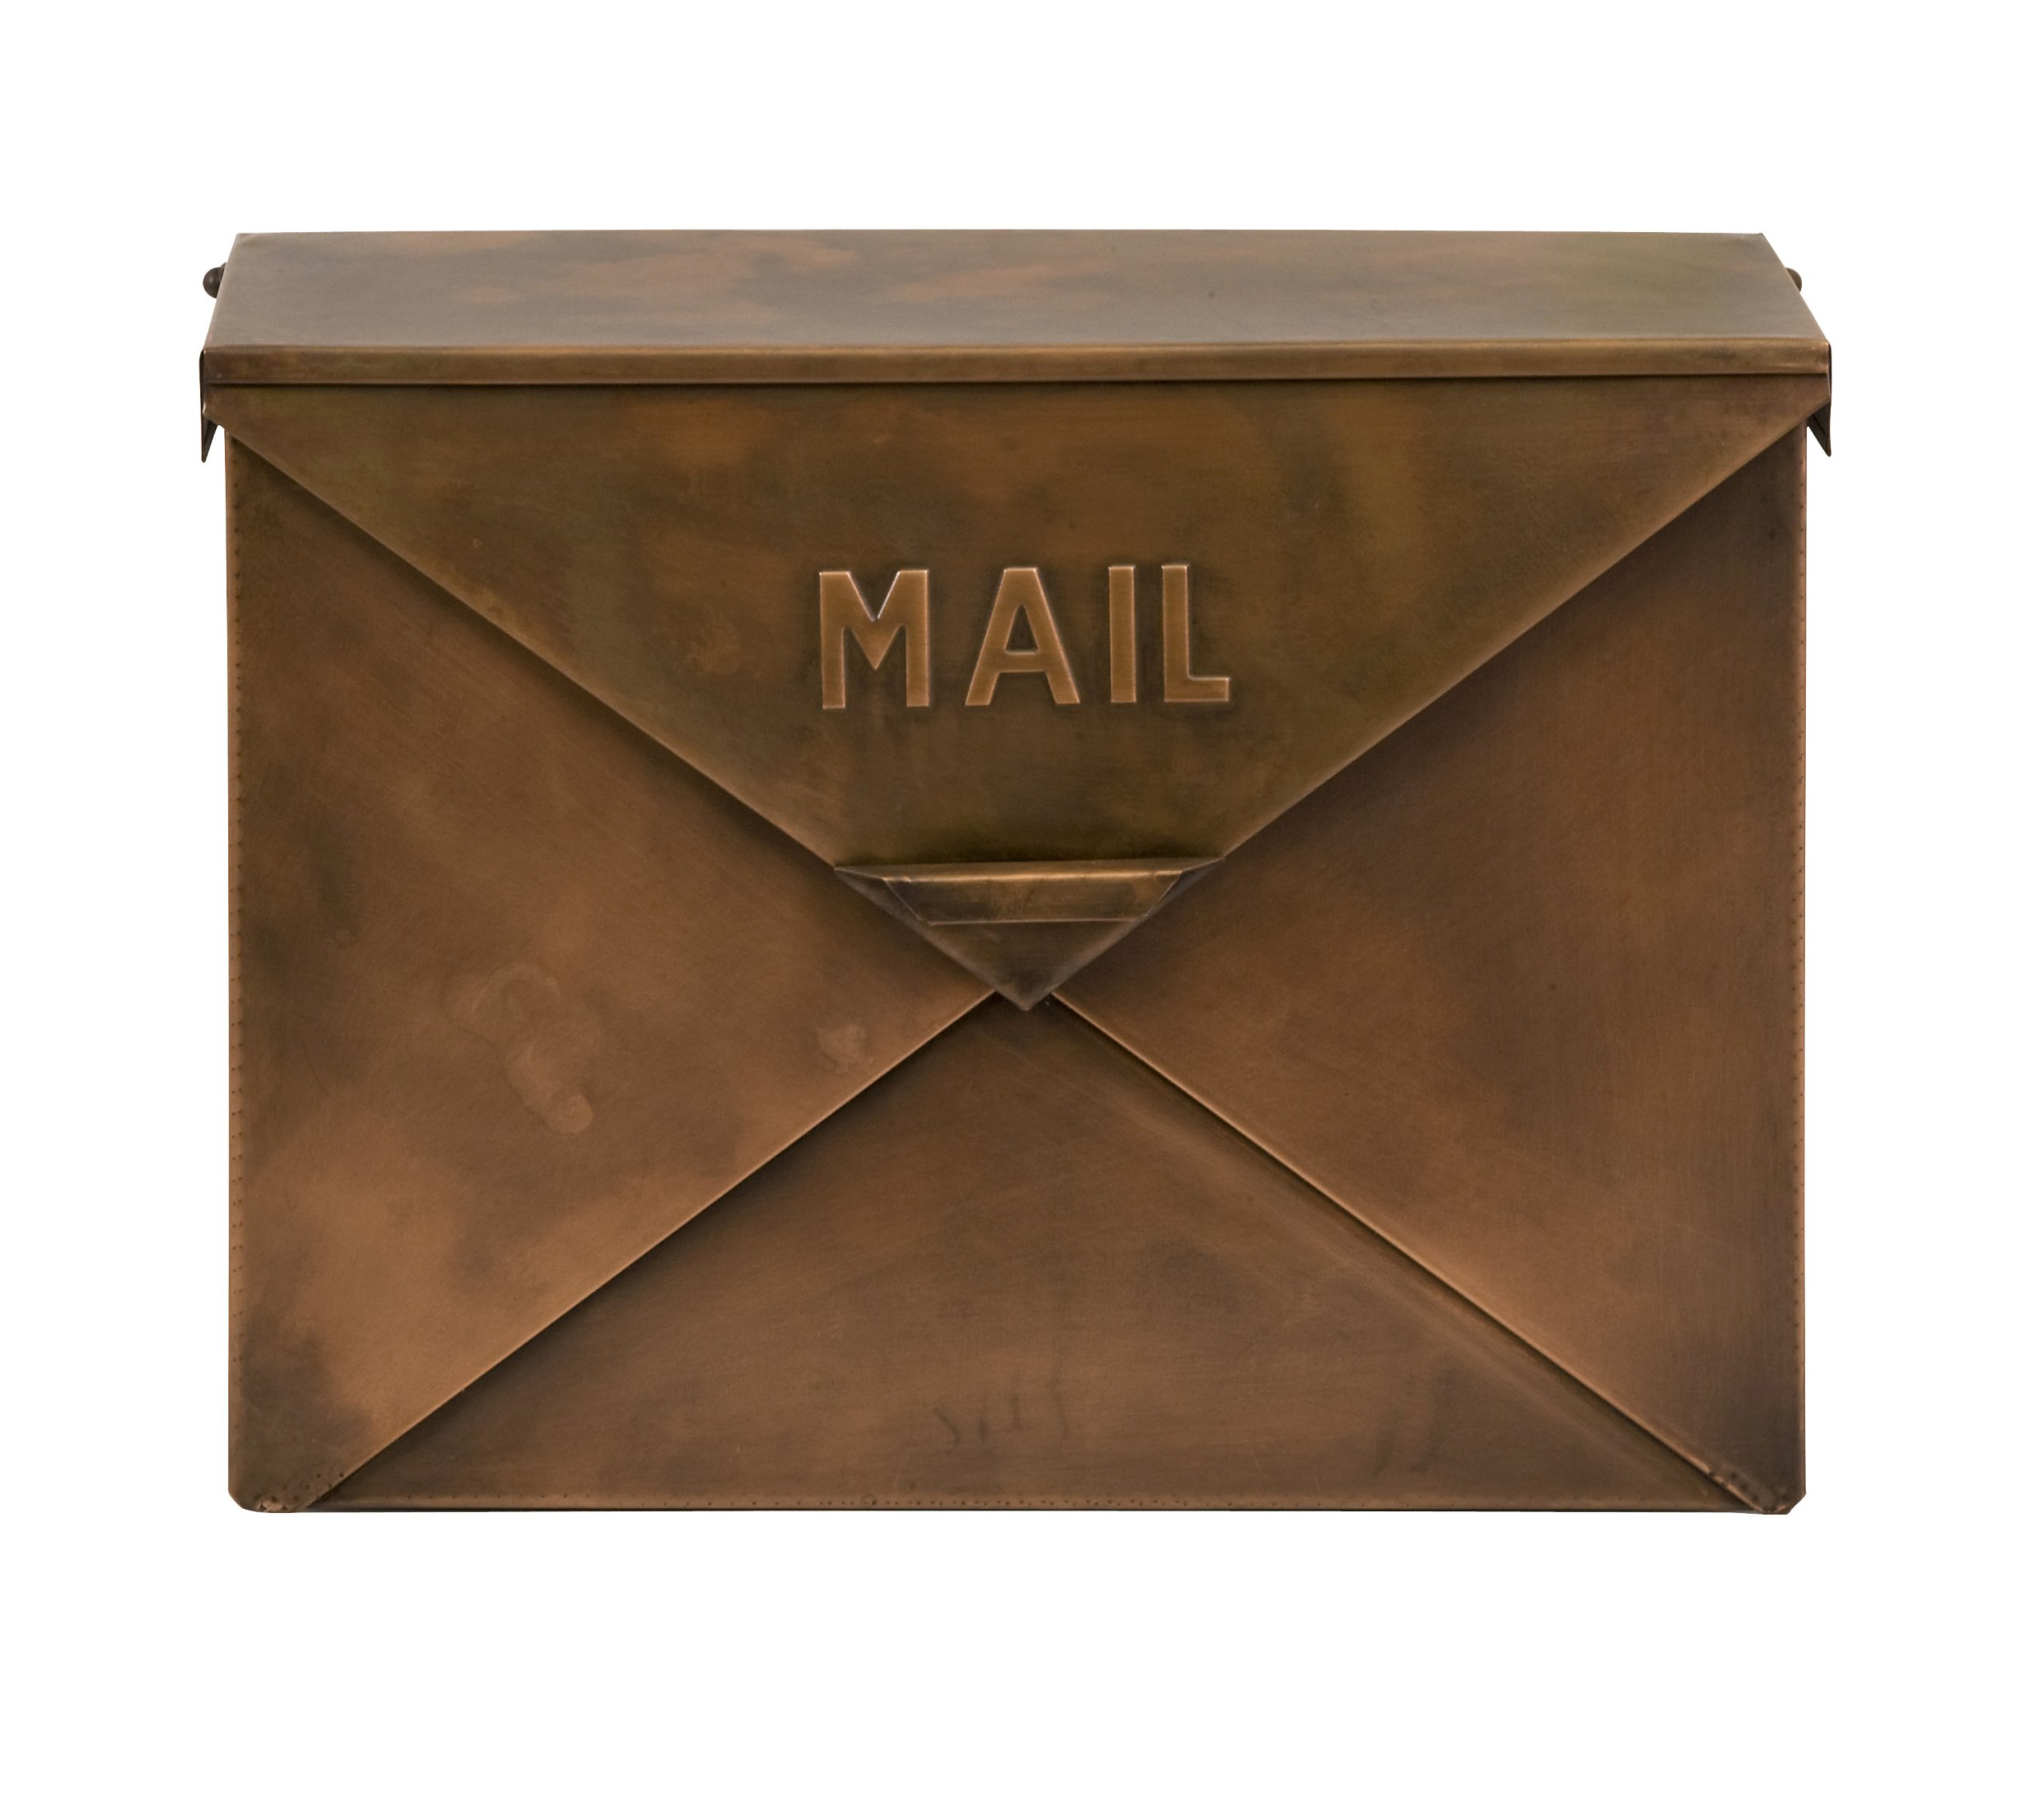 CC Home Furnishings 16'' Unique Envelope Style Rustic Copper Colored Decorative Mail Box by imax